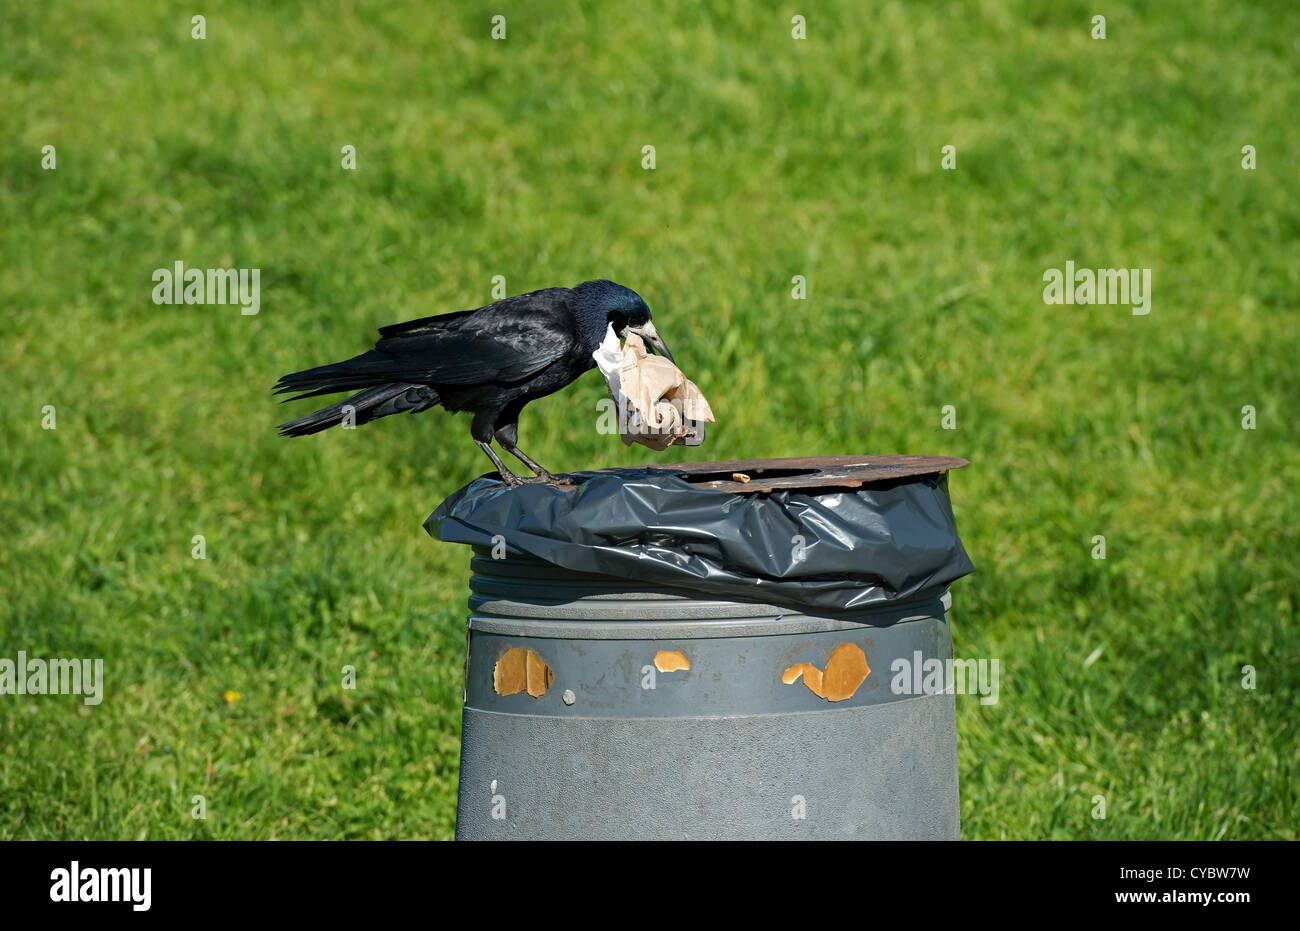 Rook on rubbish bin searching for food - Stock Image